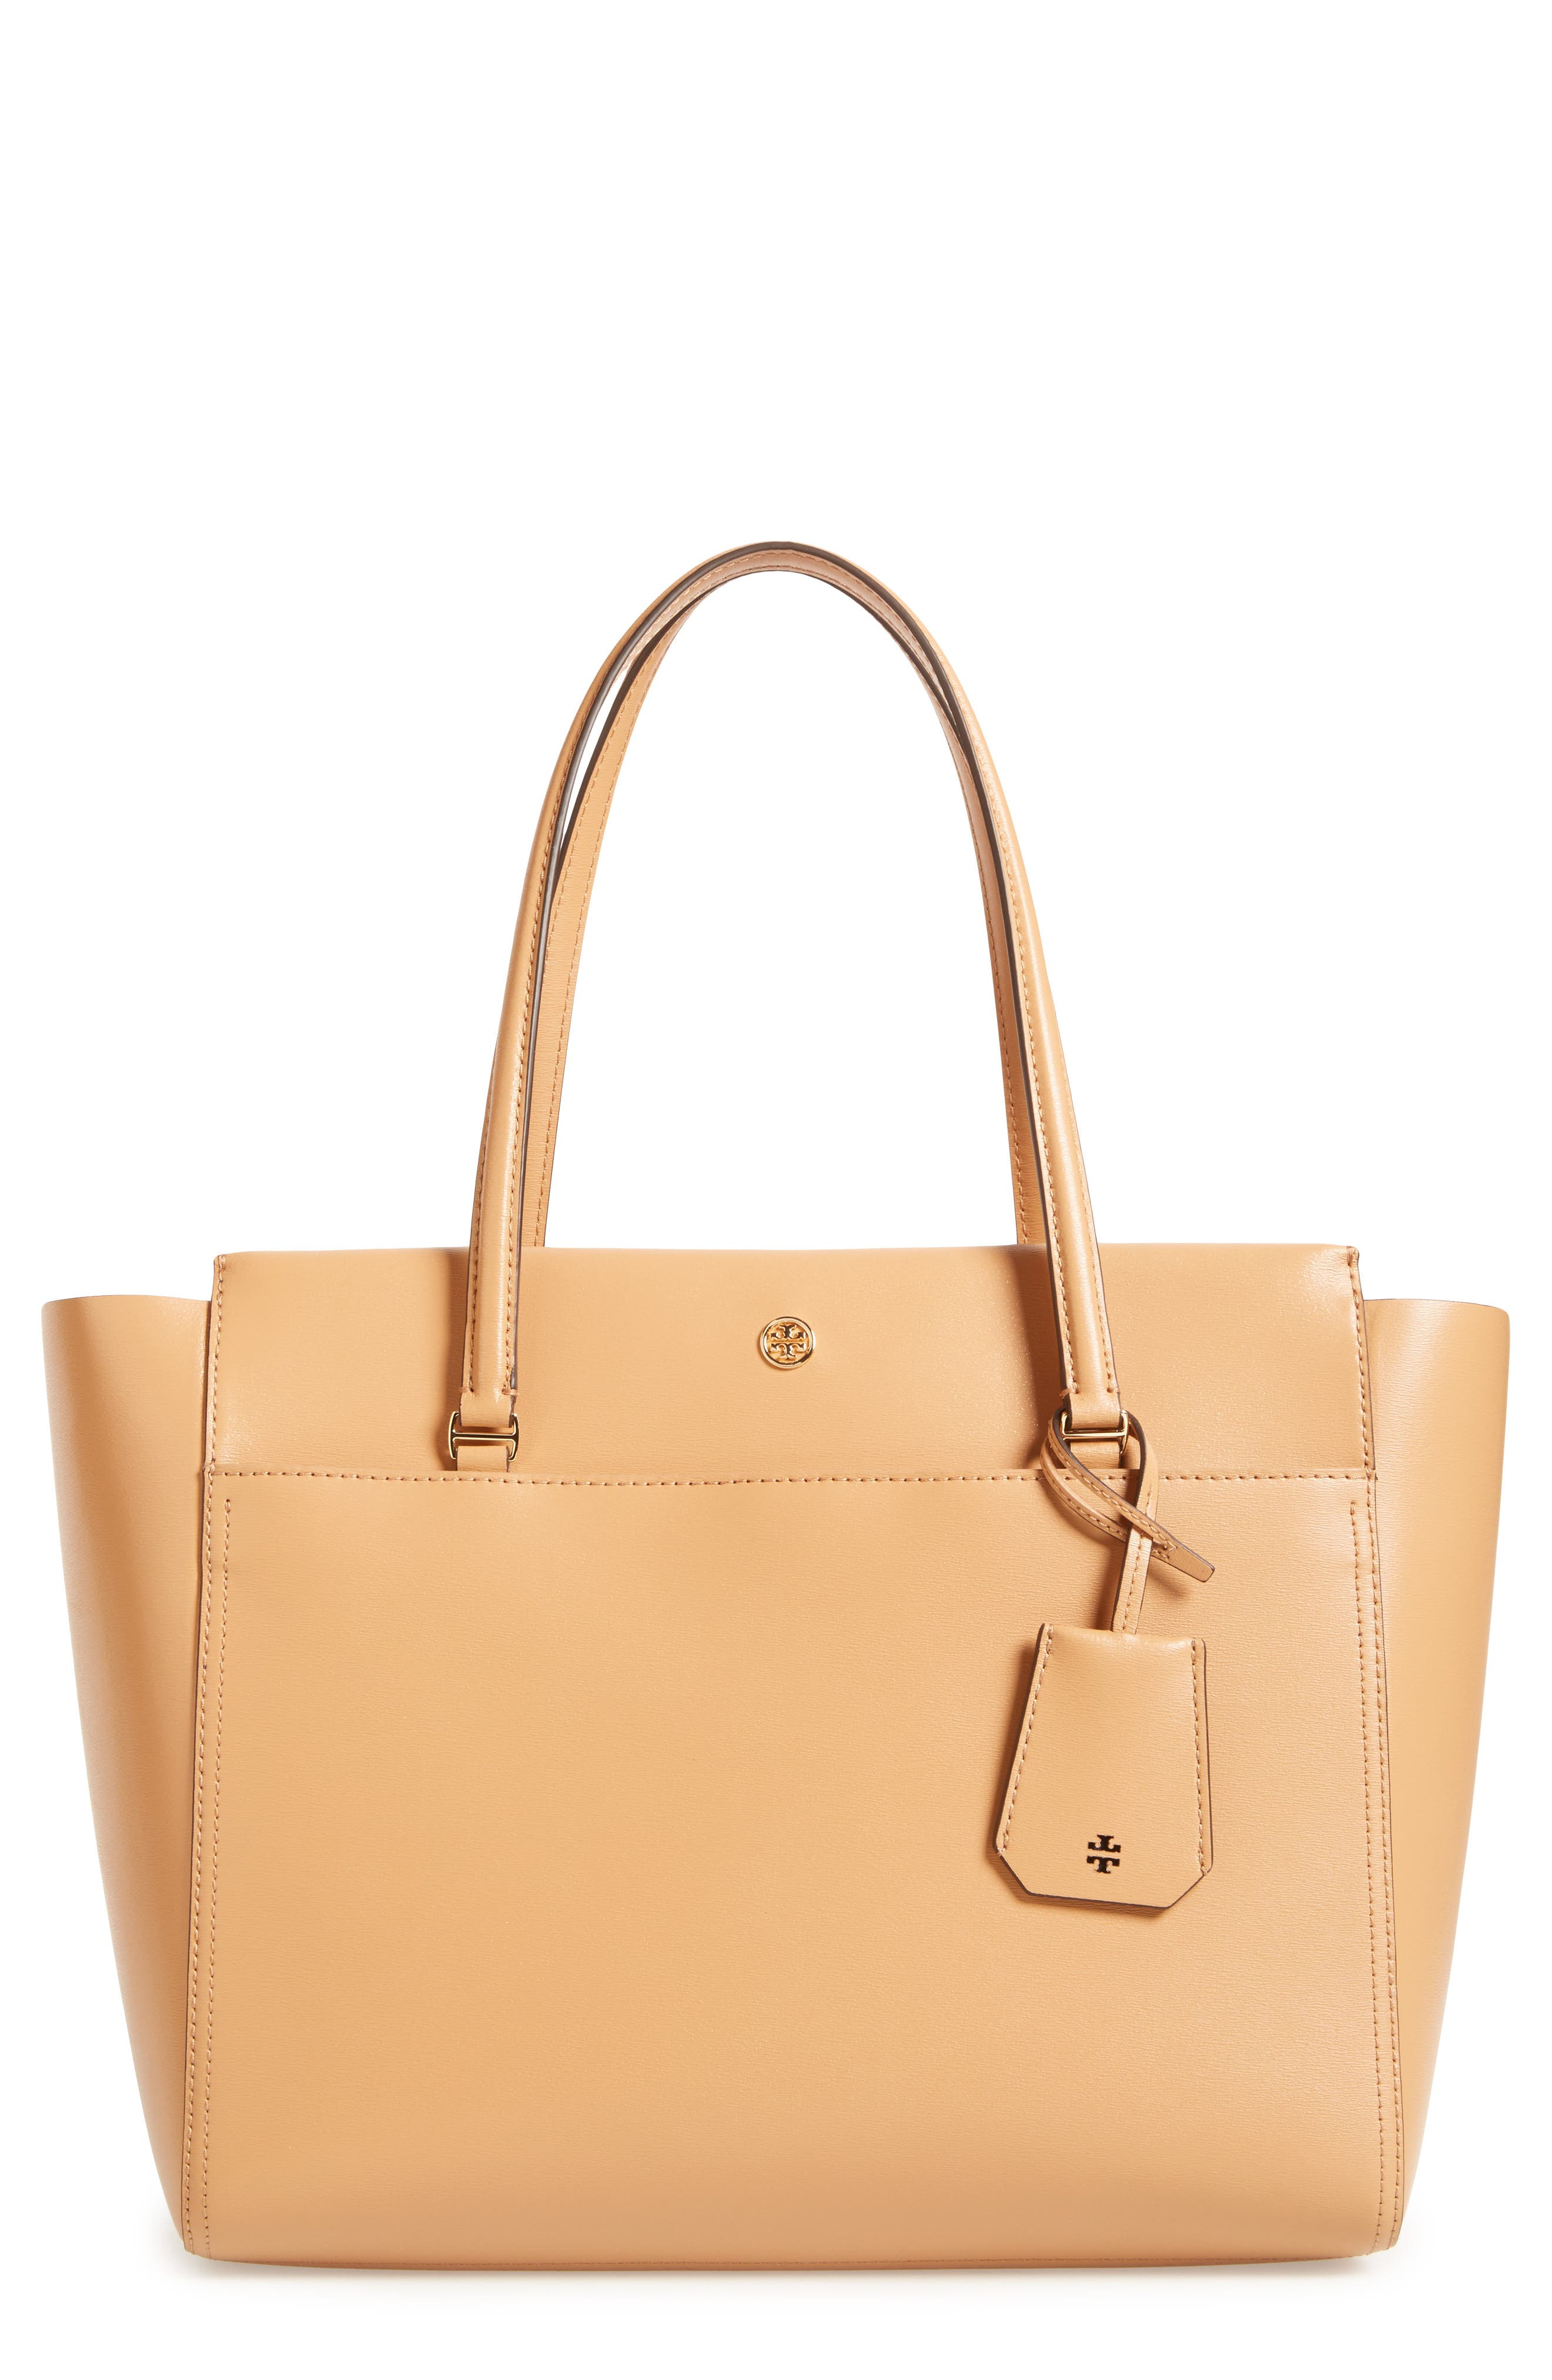 Alternate Image 1 Selected - Tory Burch Parker Leather Tote